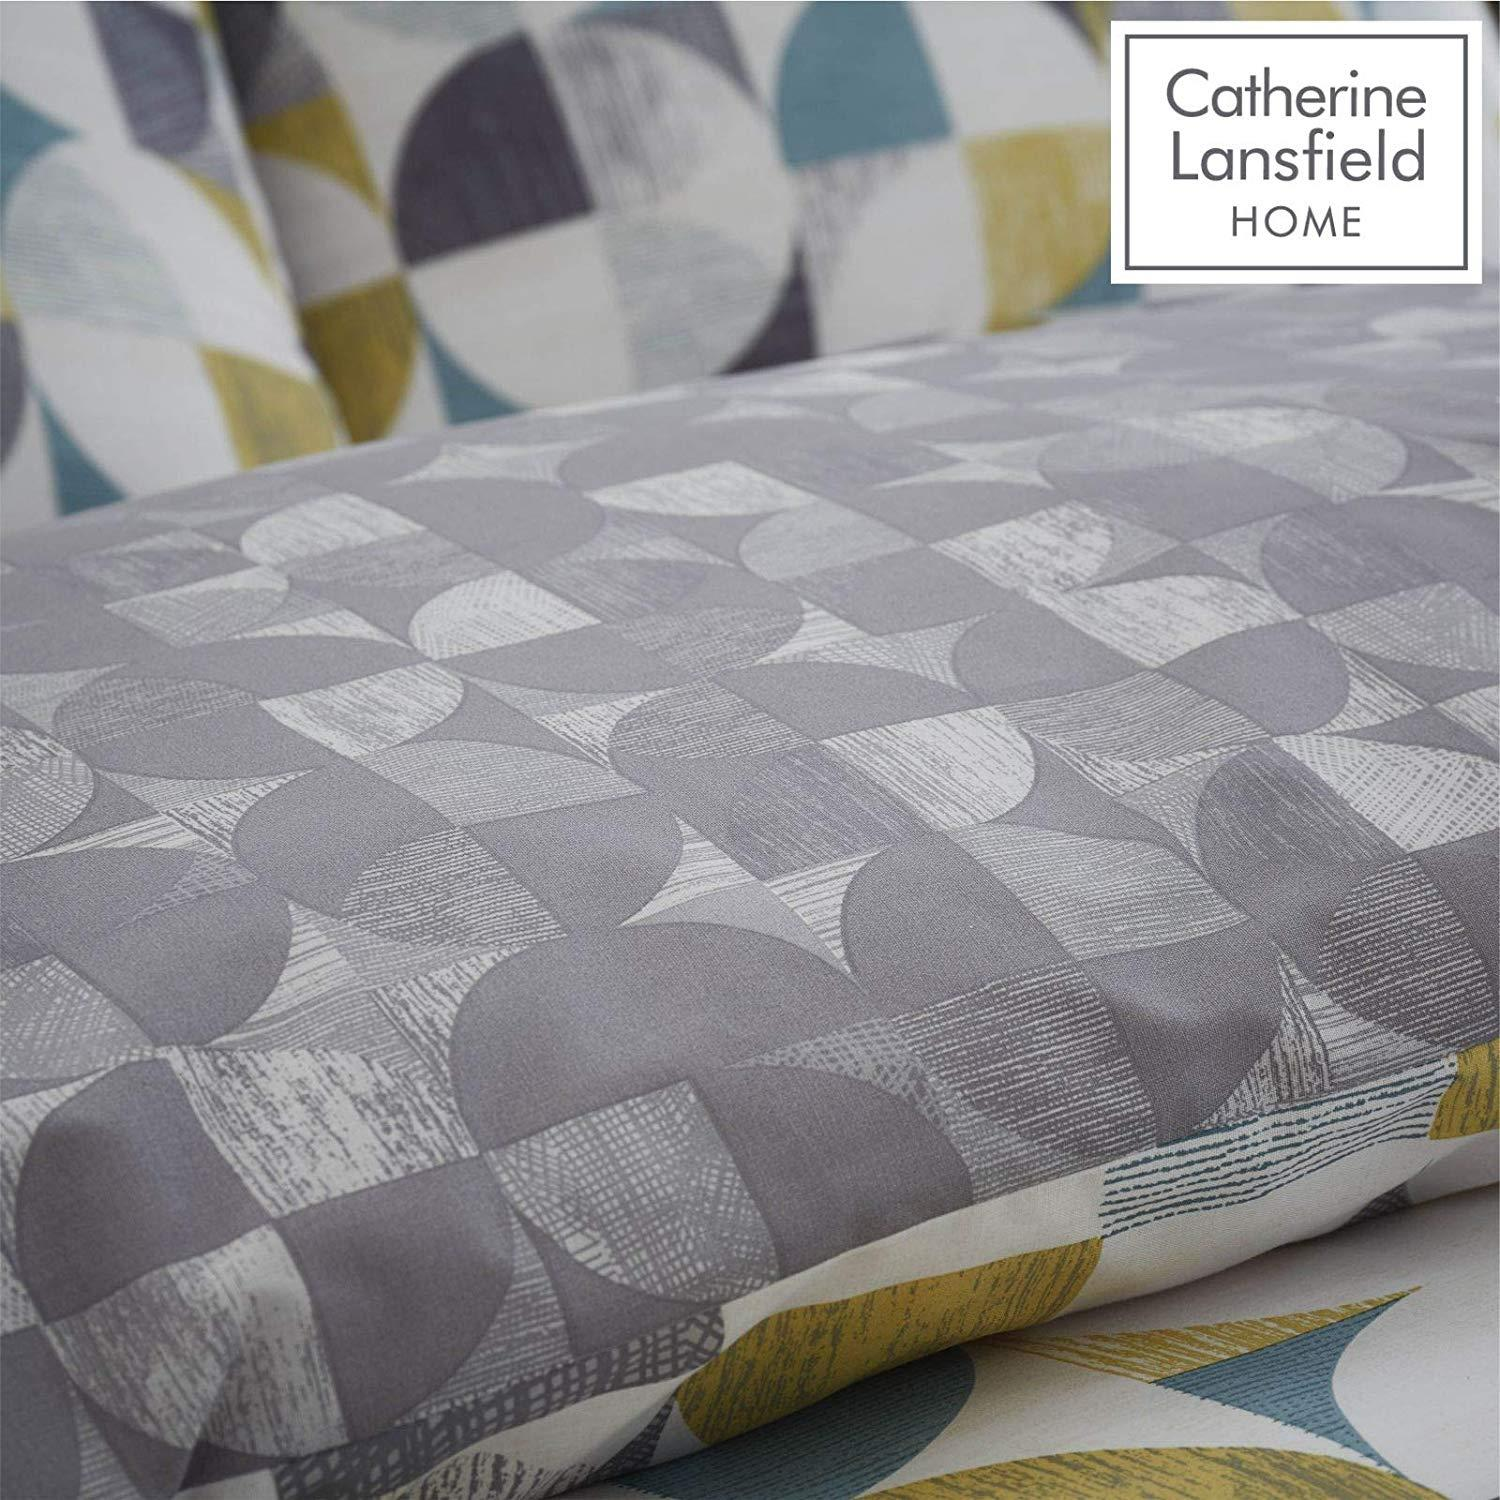 Catherine-Lansfield-Retro-Circles-Multi-Duvet-Set-Reversible-Bedding-Curtain thumbnail 17